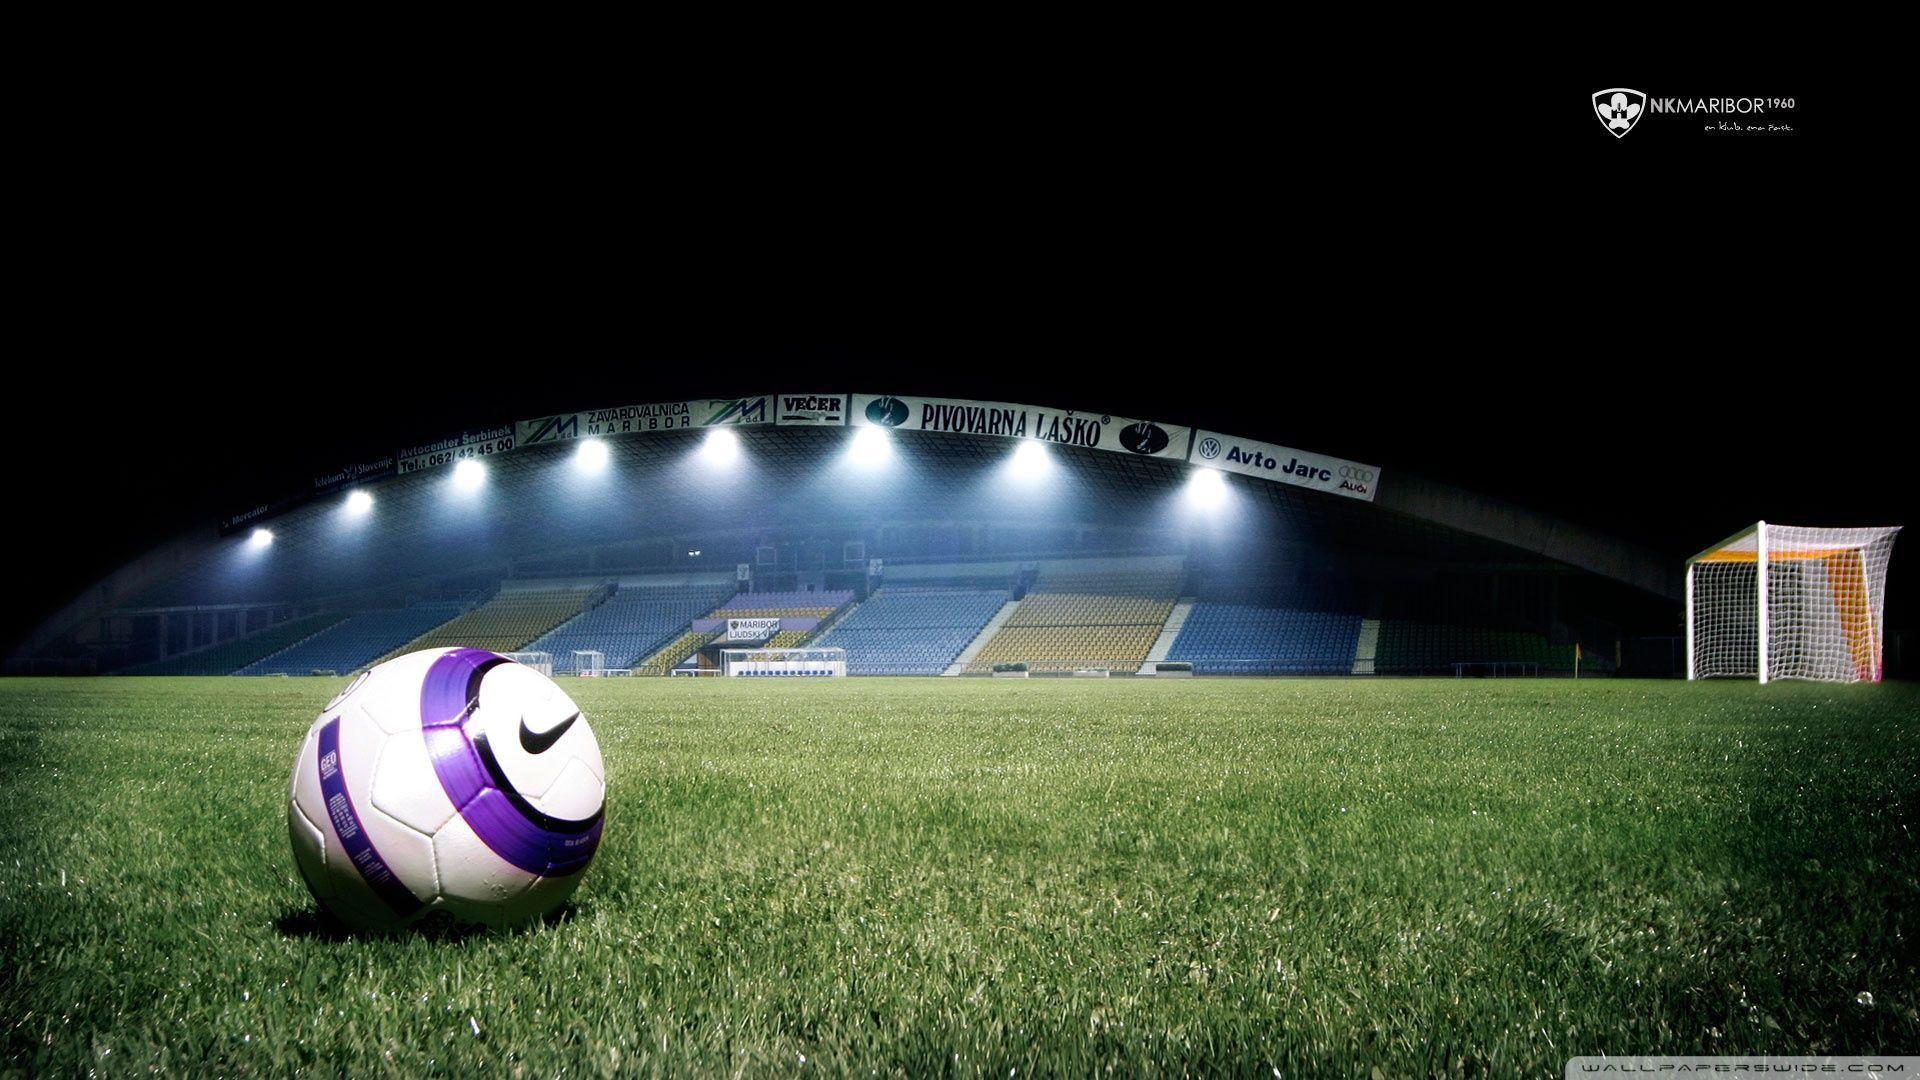 calcio hd wallpapers - photo #41